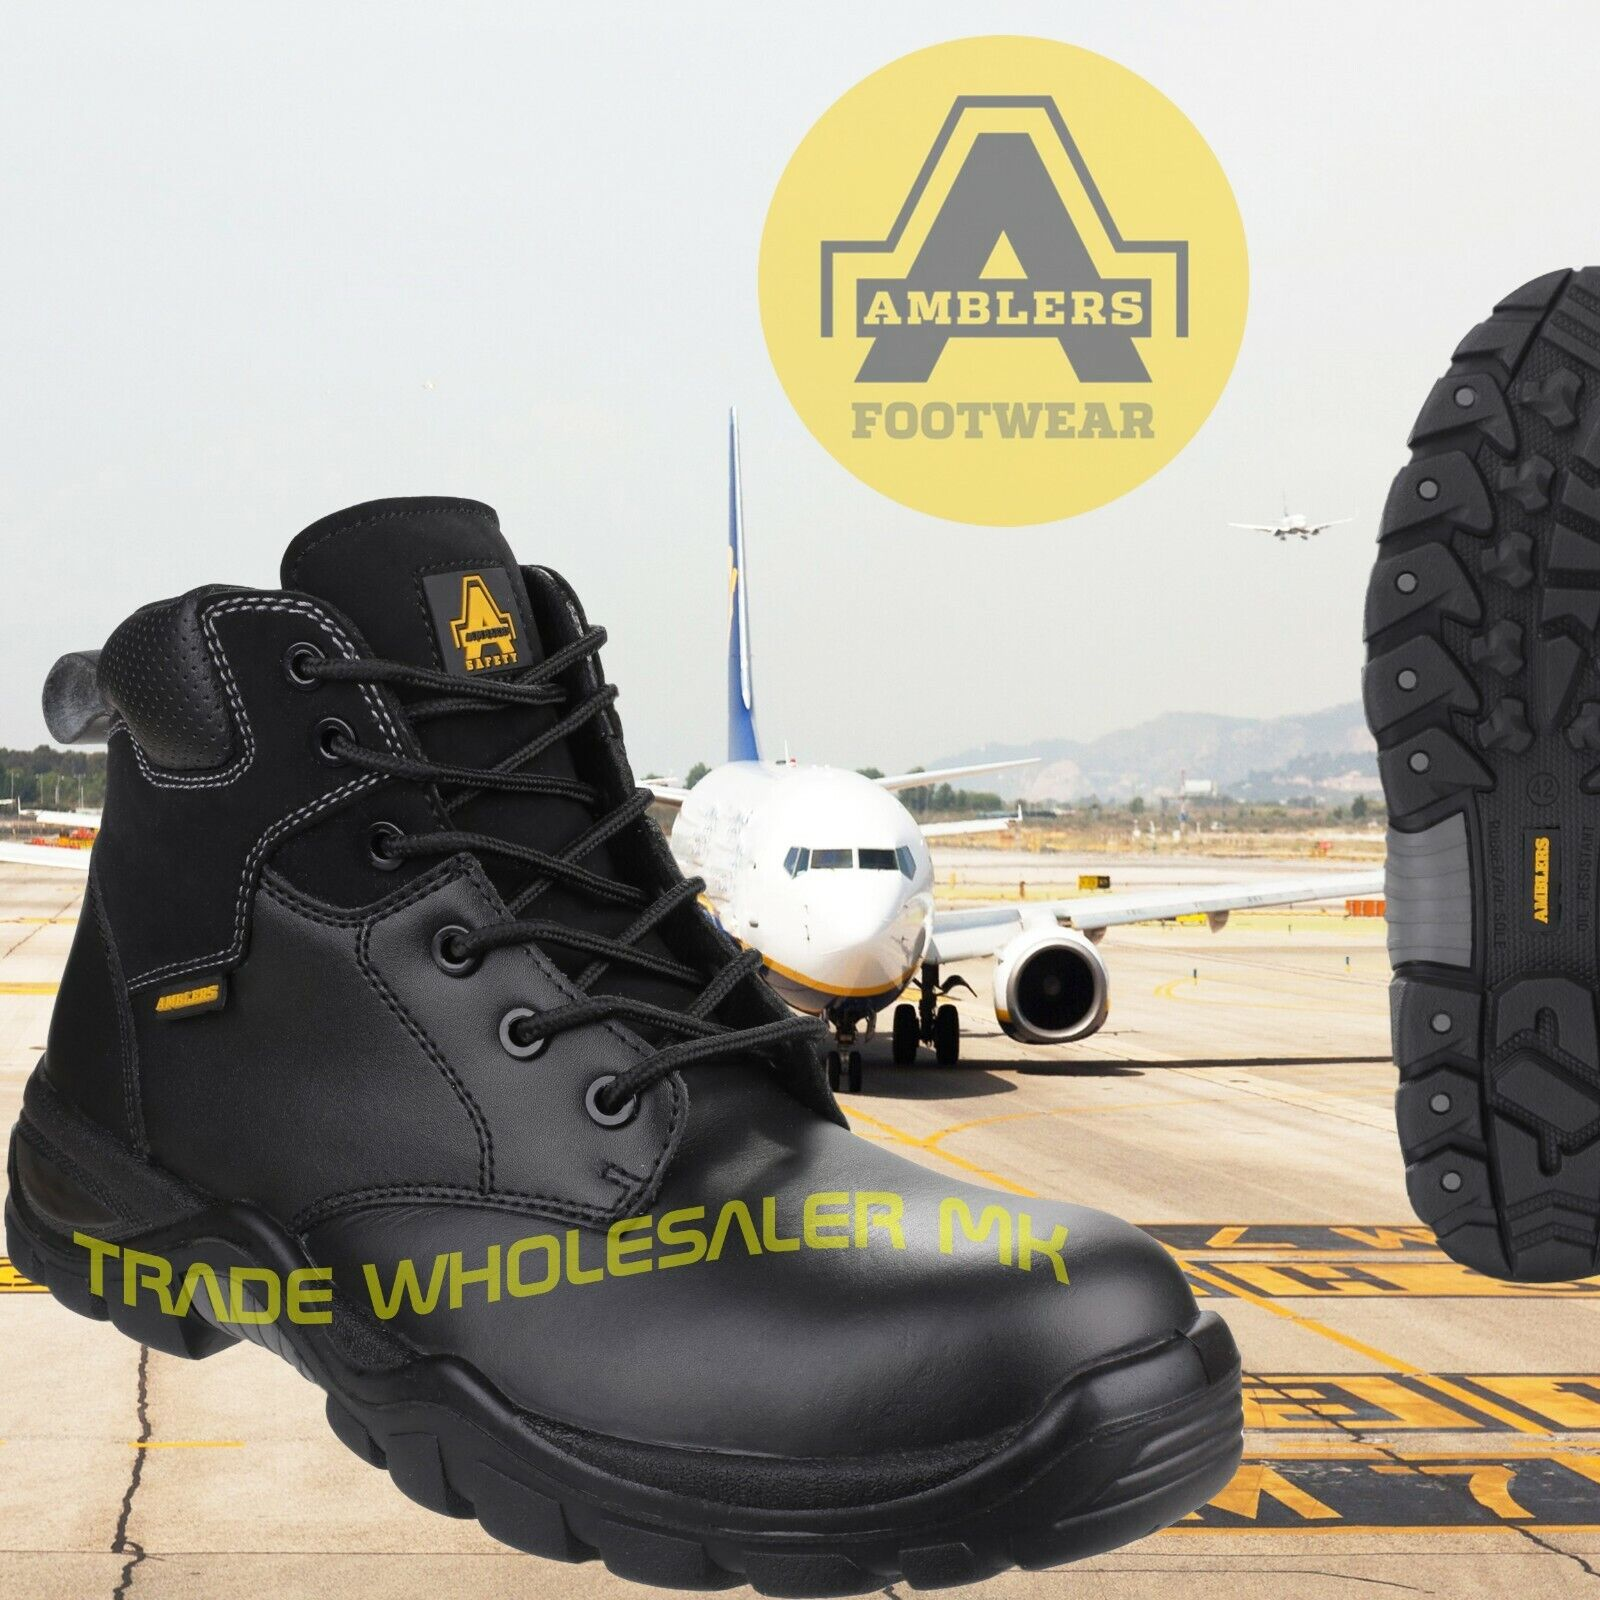 Tactical Composite Toe Safety Police Work  Metal Free Safety boots Airside safe